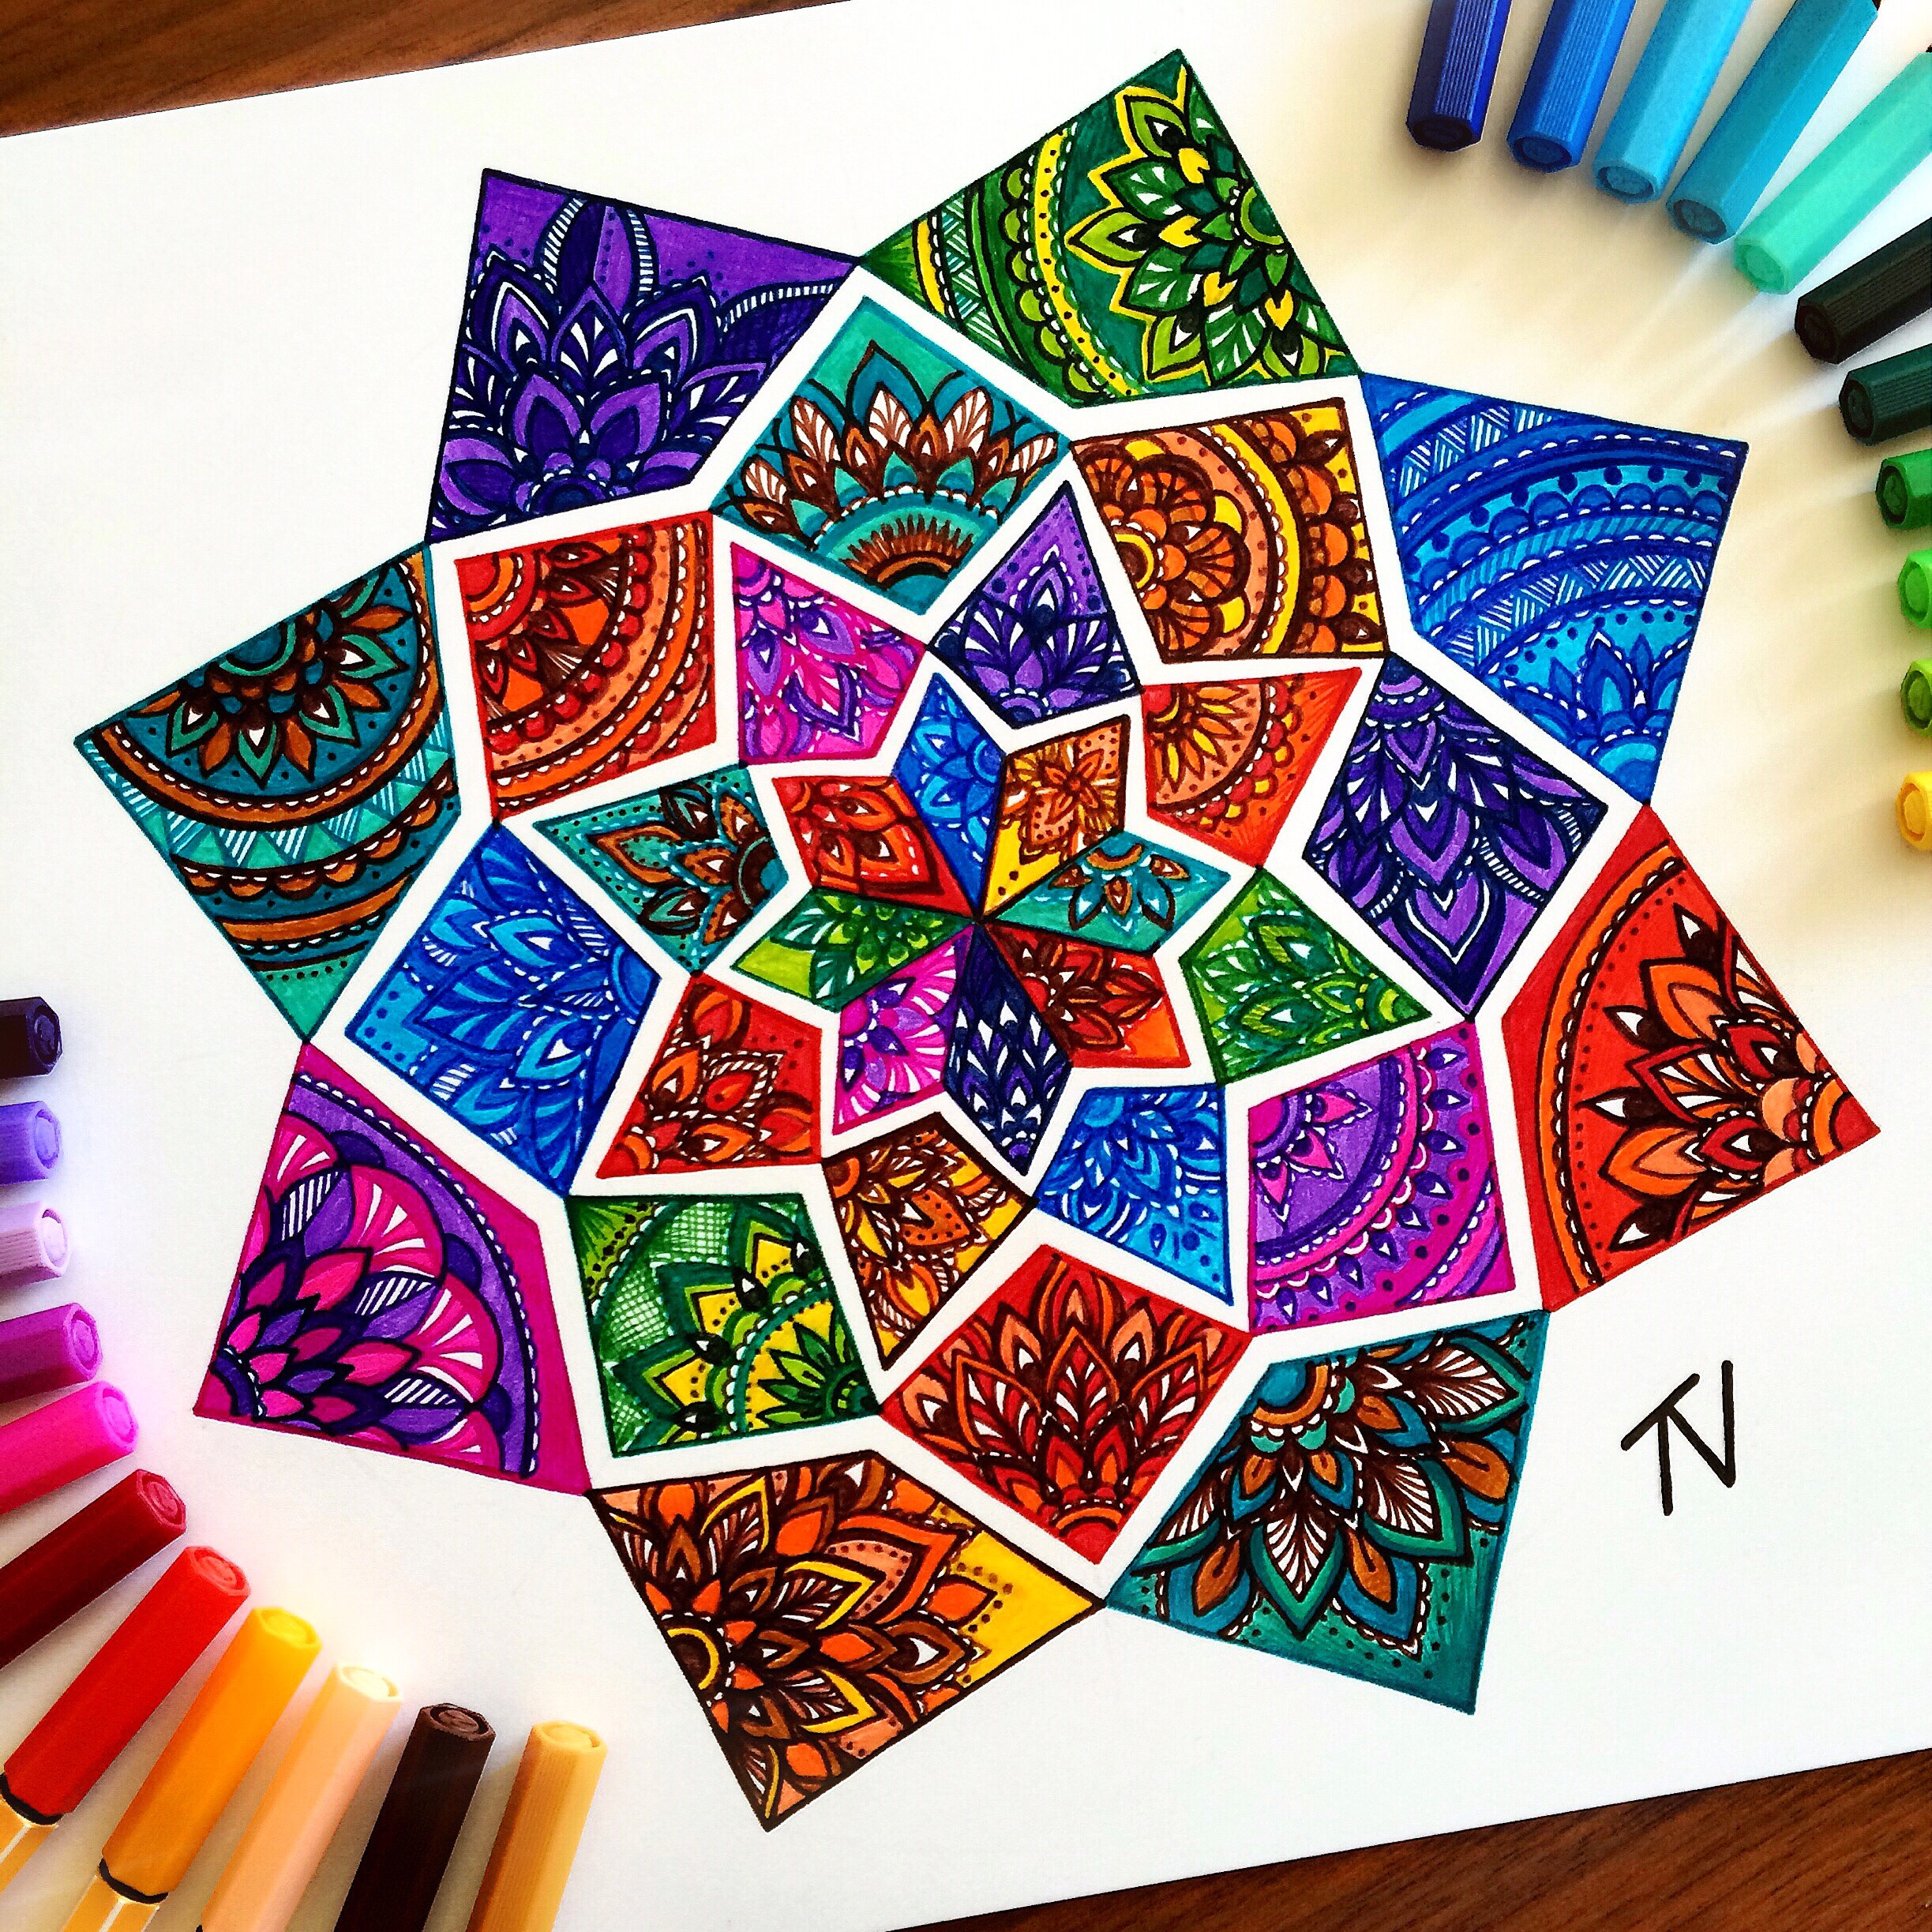 The vibrant art of mandalas by Nigar Tahmazova